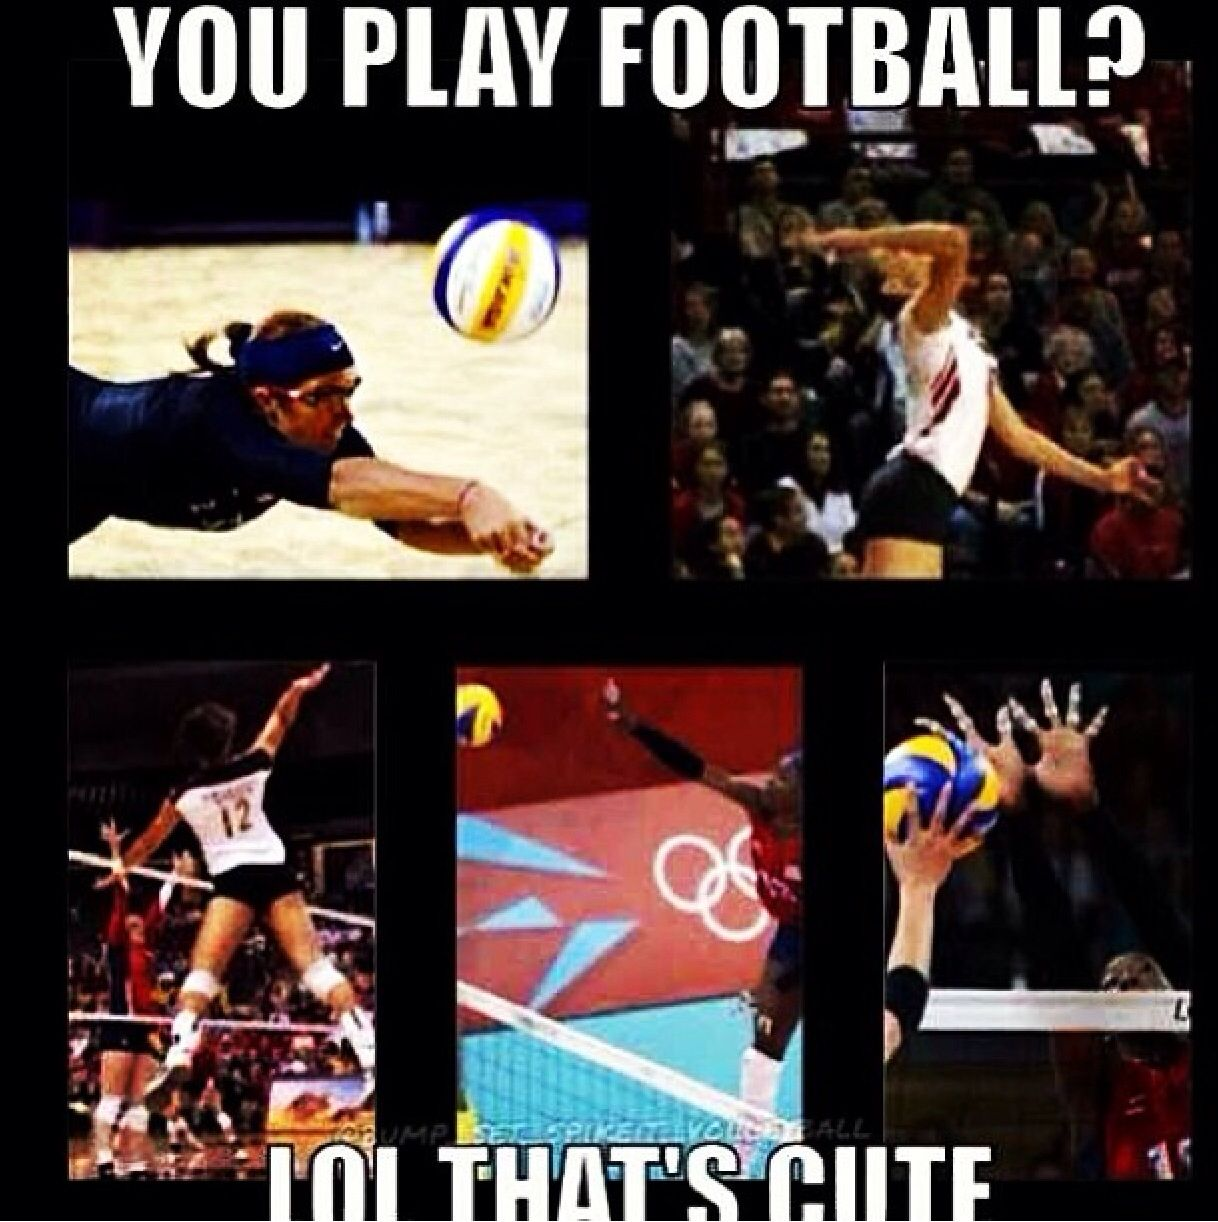 Volleyball Vs Football Volleyballmemes Volleyballquotes Sportquotes Mh Volleyball Play Volleyball Volleyball Memes Volleyball Humor